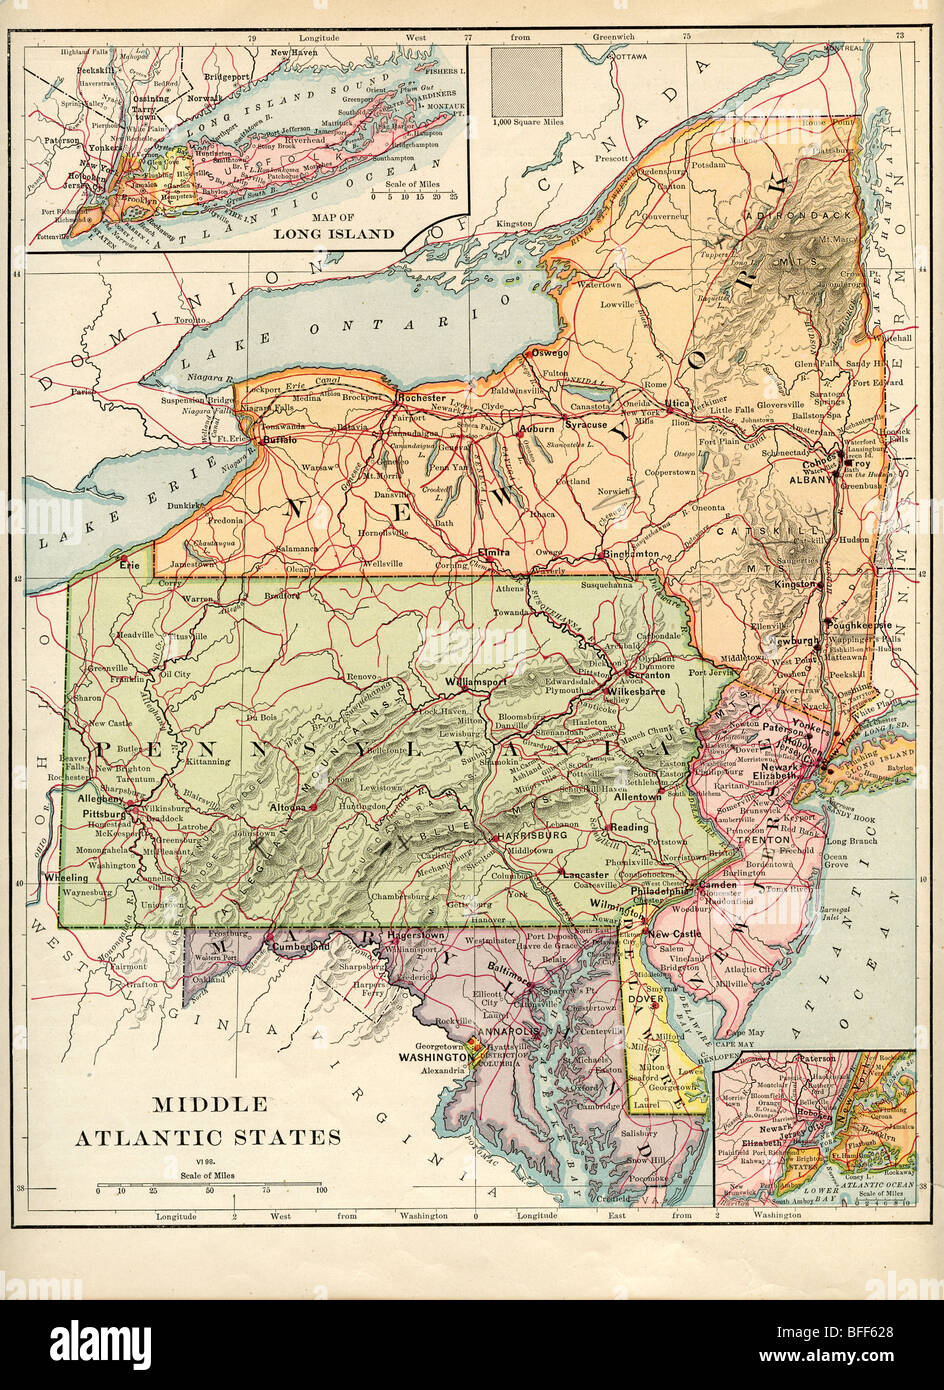 Map Of Middle Atlantic States : middle, atlantic, states, Atlantic, States, Resolution, Stock, Photography, Images, Alamy